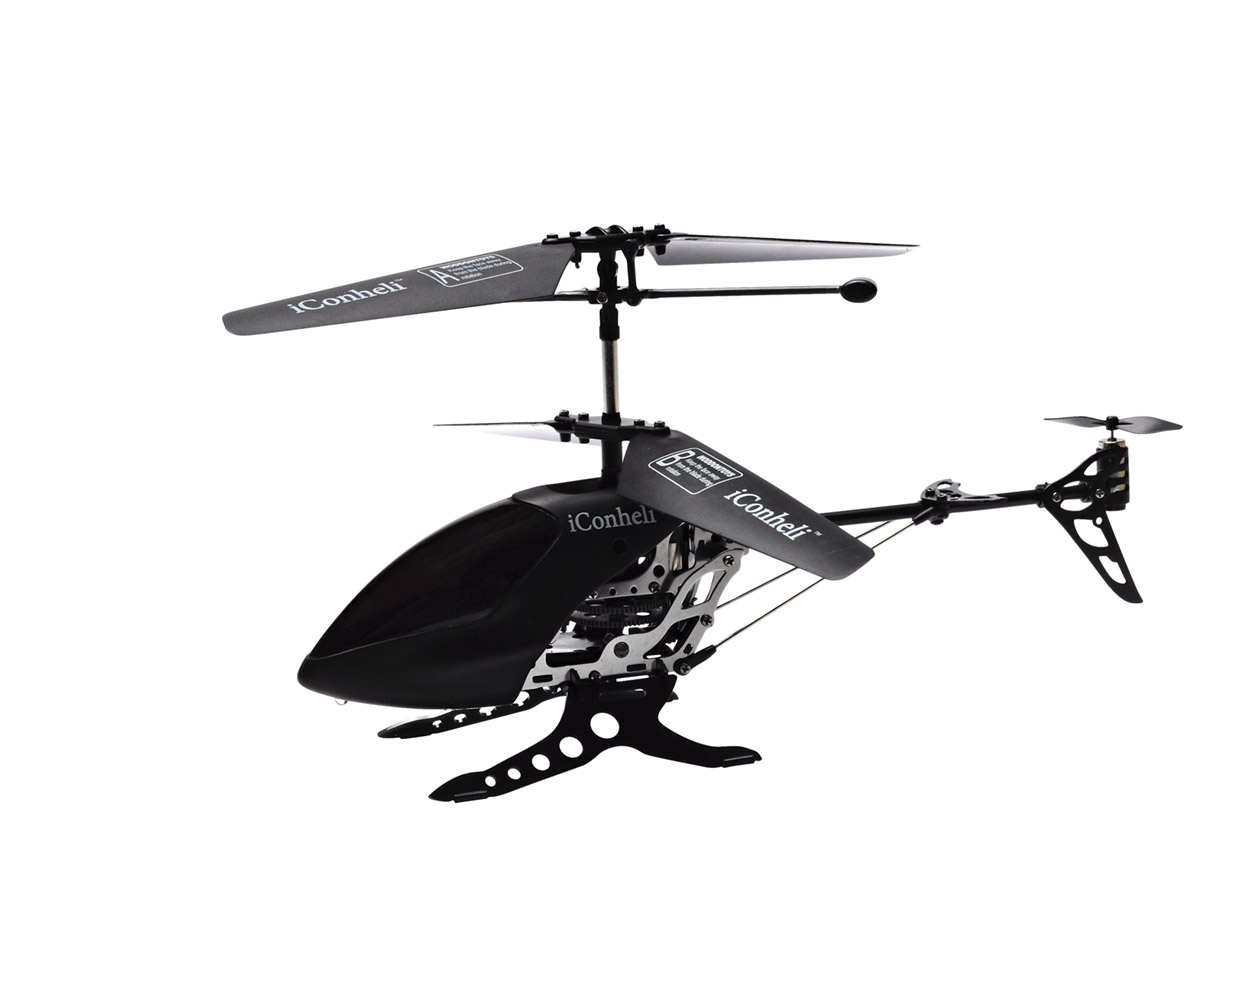 Игрушка iConheli Helicopter, фотография №1